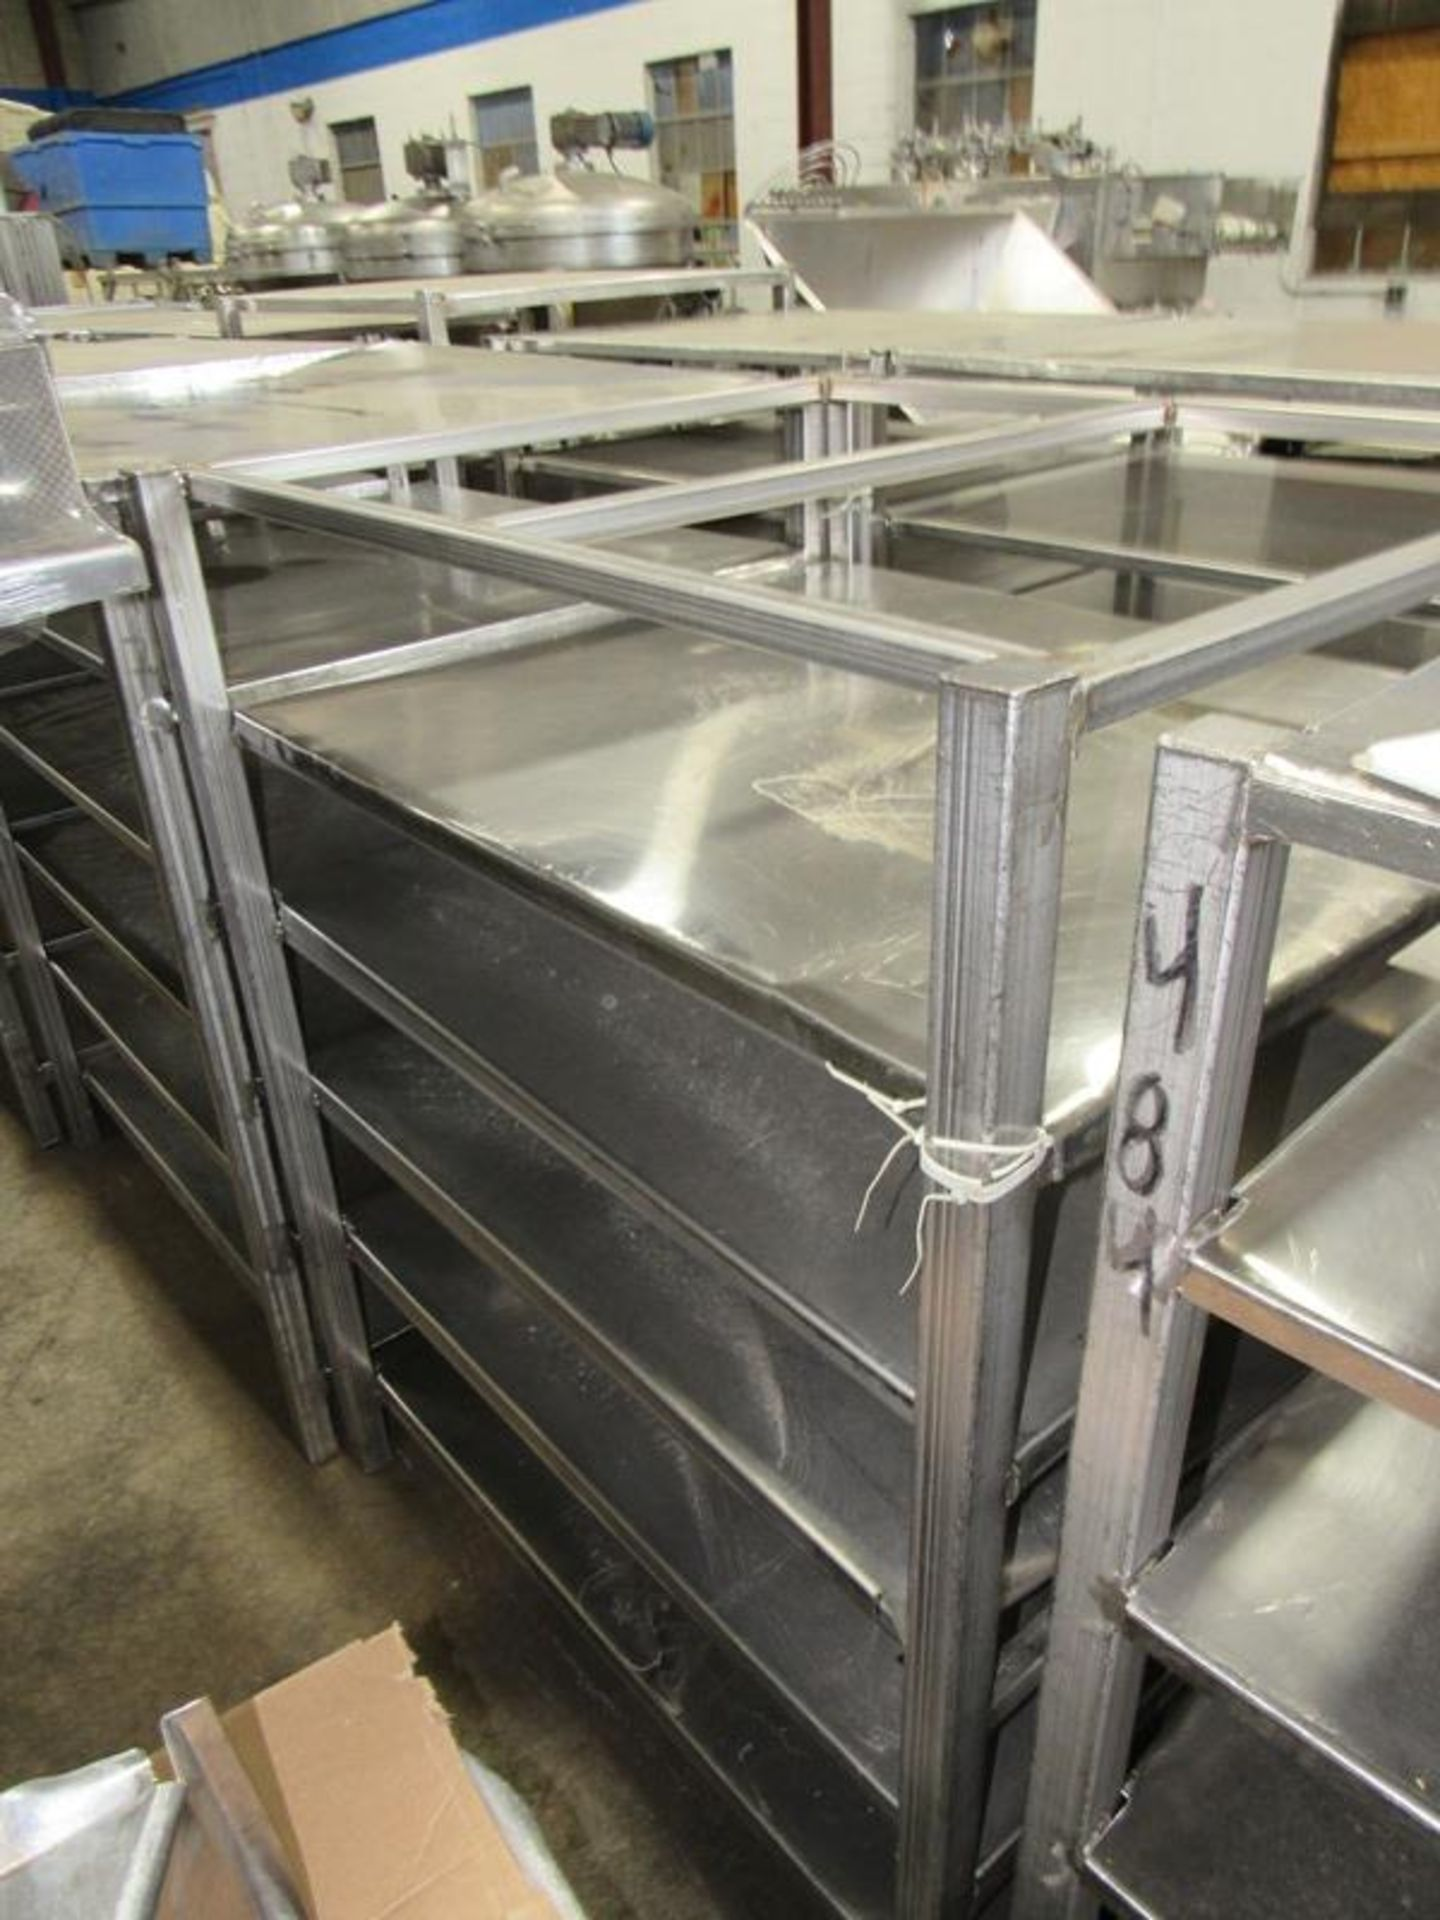 """Stainless Steel Racks, 44"""" W X 48"""" L X 5' T, 5 shelves spaced 9"""" apart (Equipment must be removed by - Image 2 of 2"""